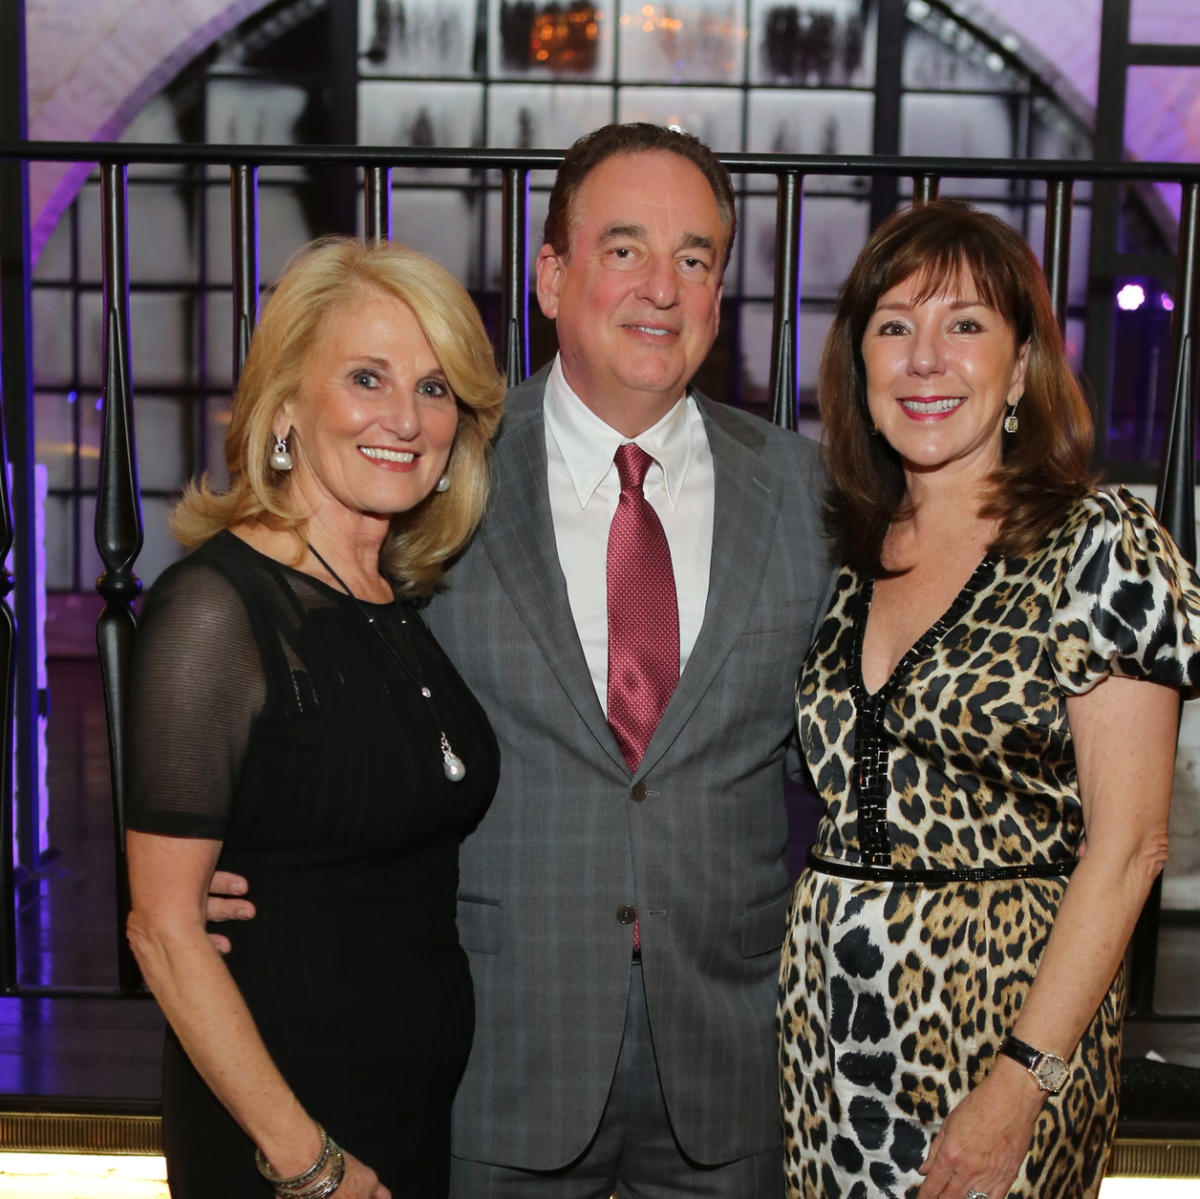 News, Shelby, Catwalk for a Cure, Nov. 2015, Denise Monteleone, Alan Stein, Elizabeth Stein